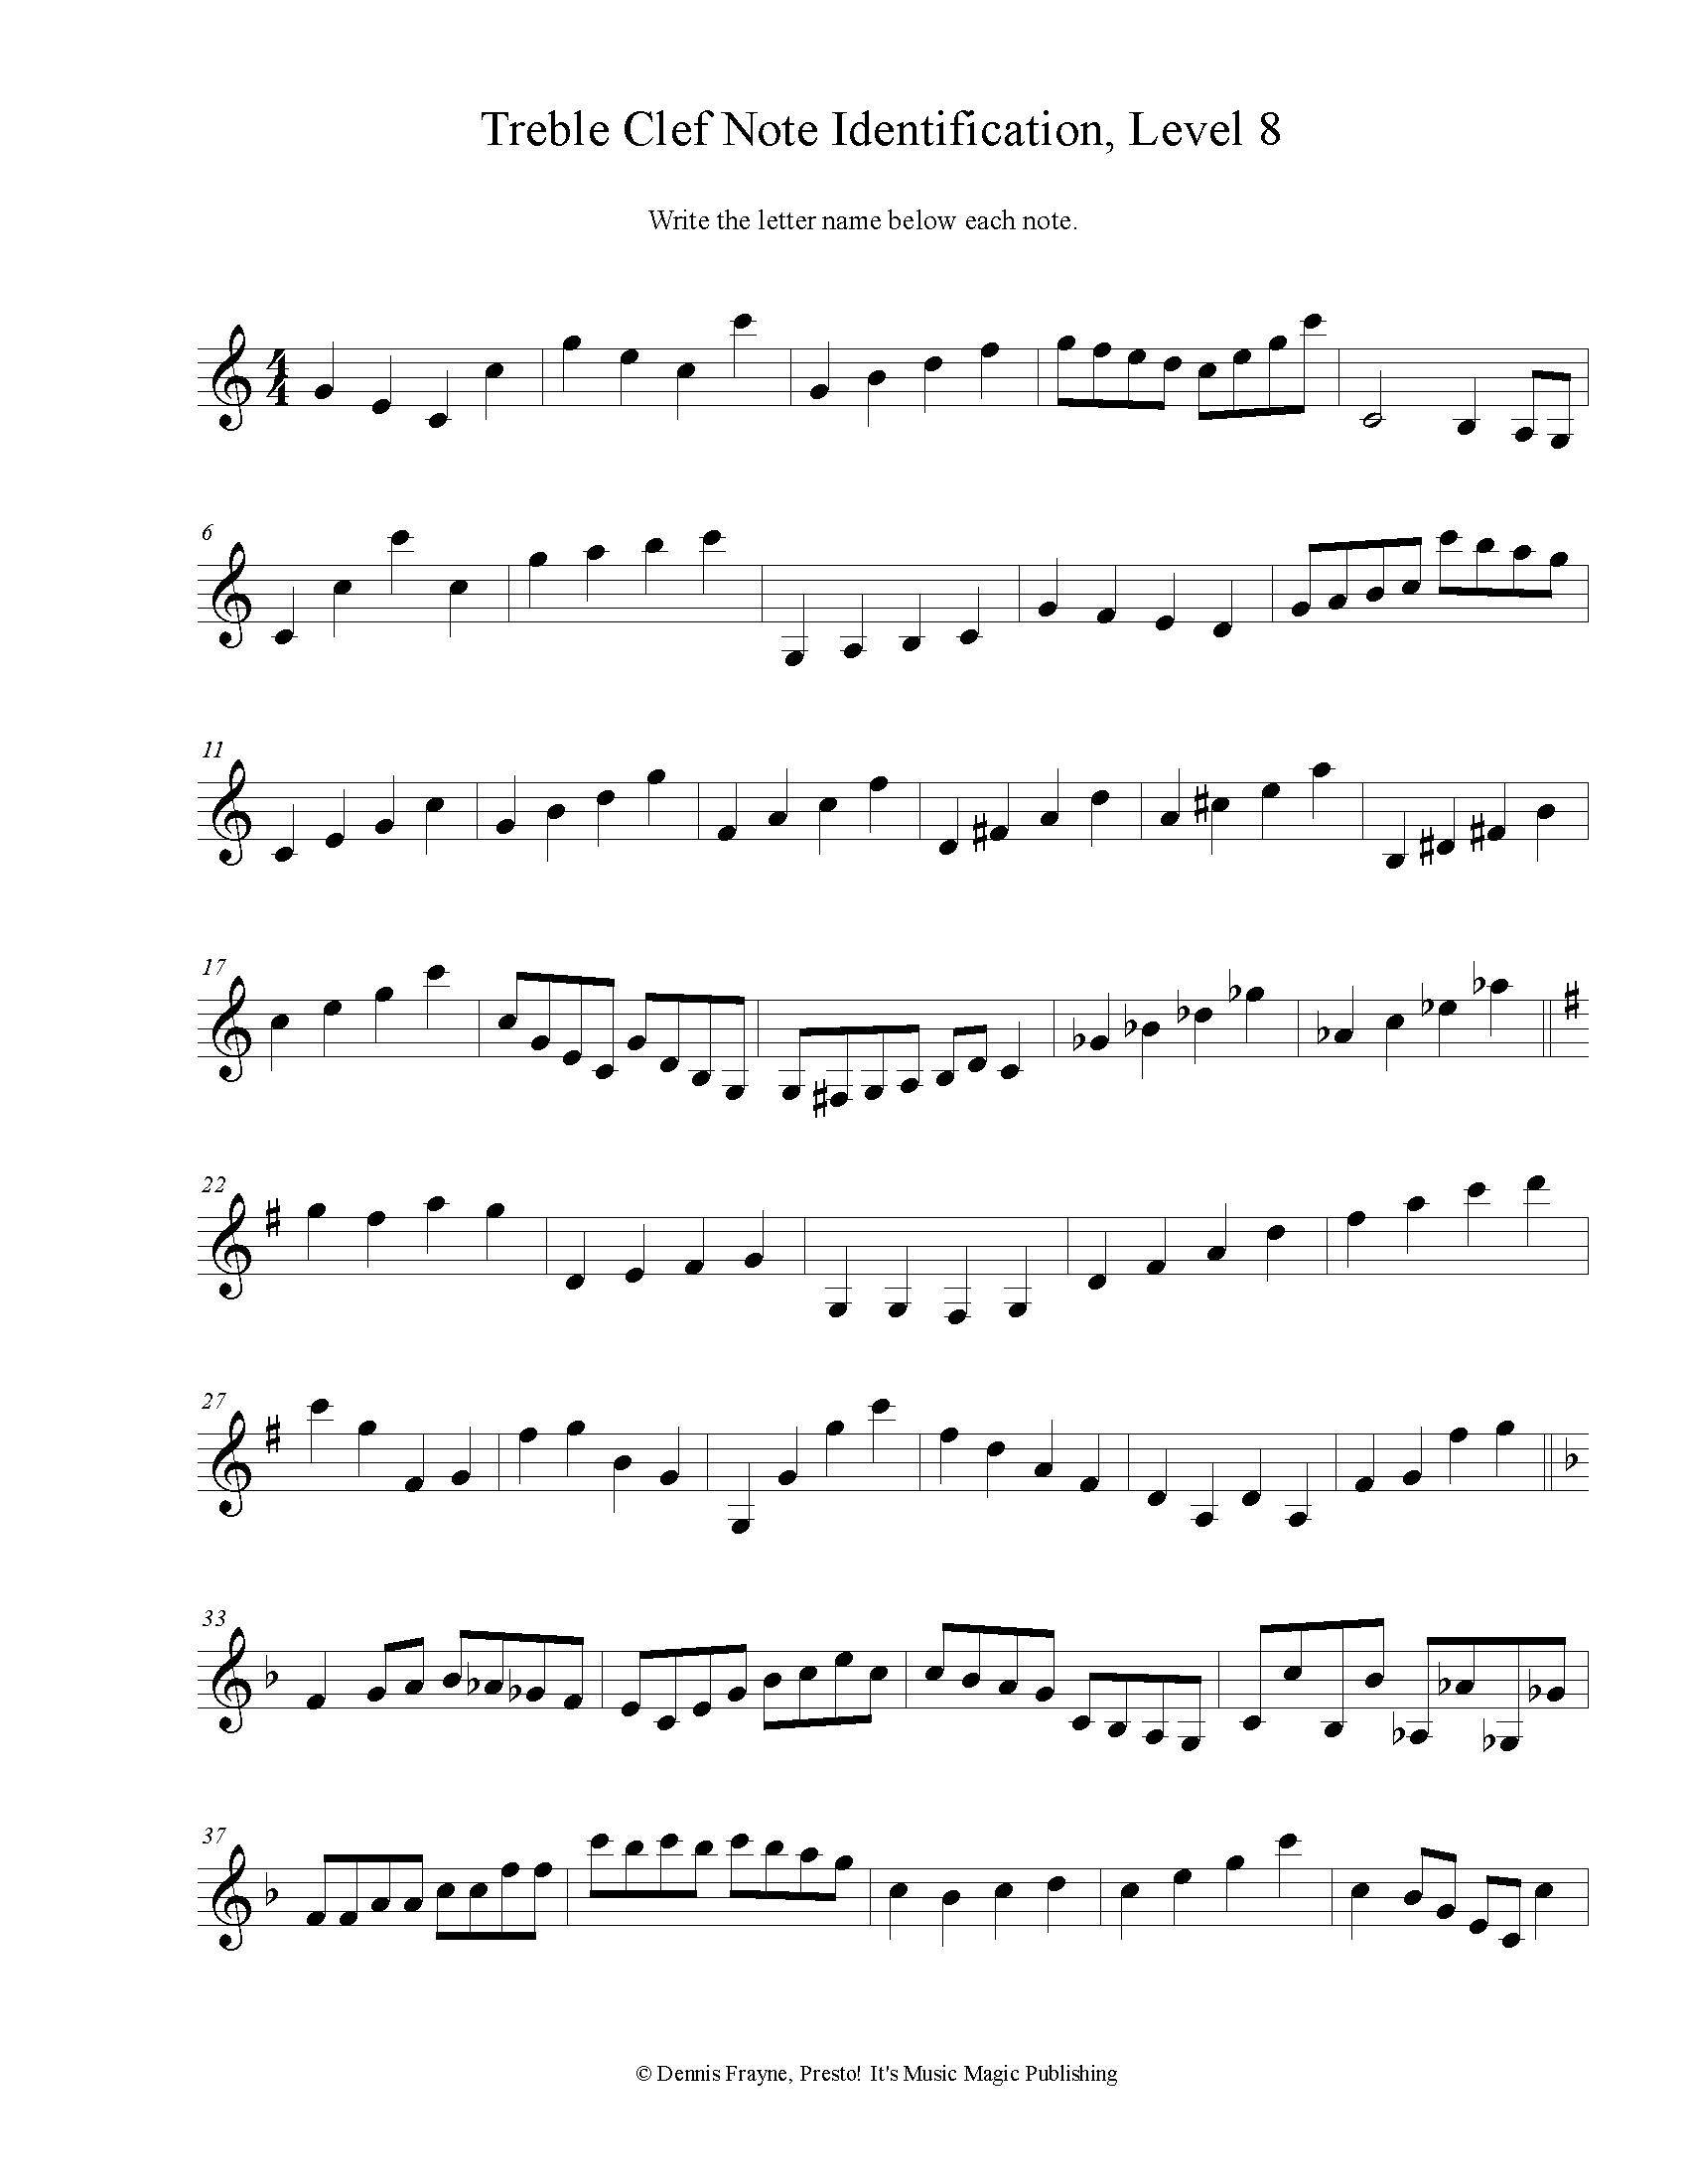 Treble Clef Note Identification, Advanced, Level 8 2 pages